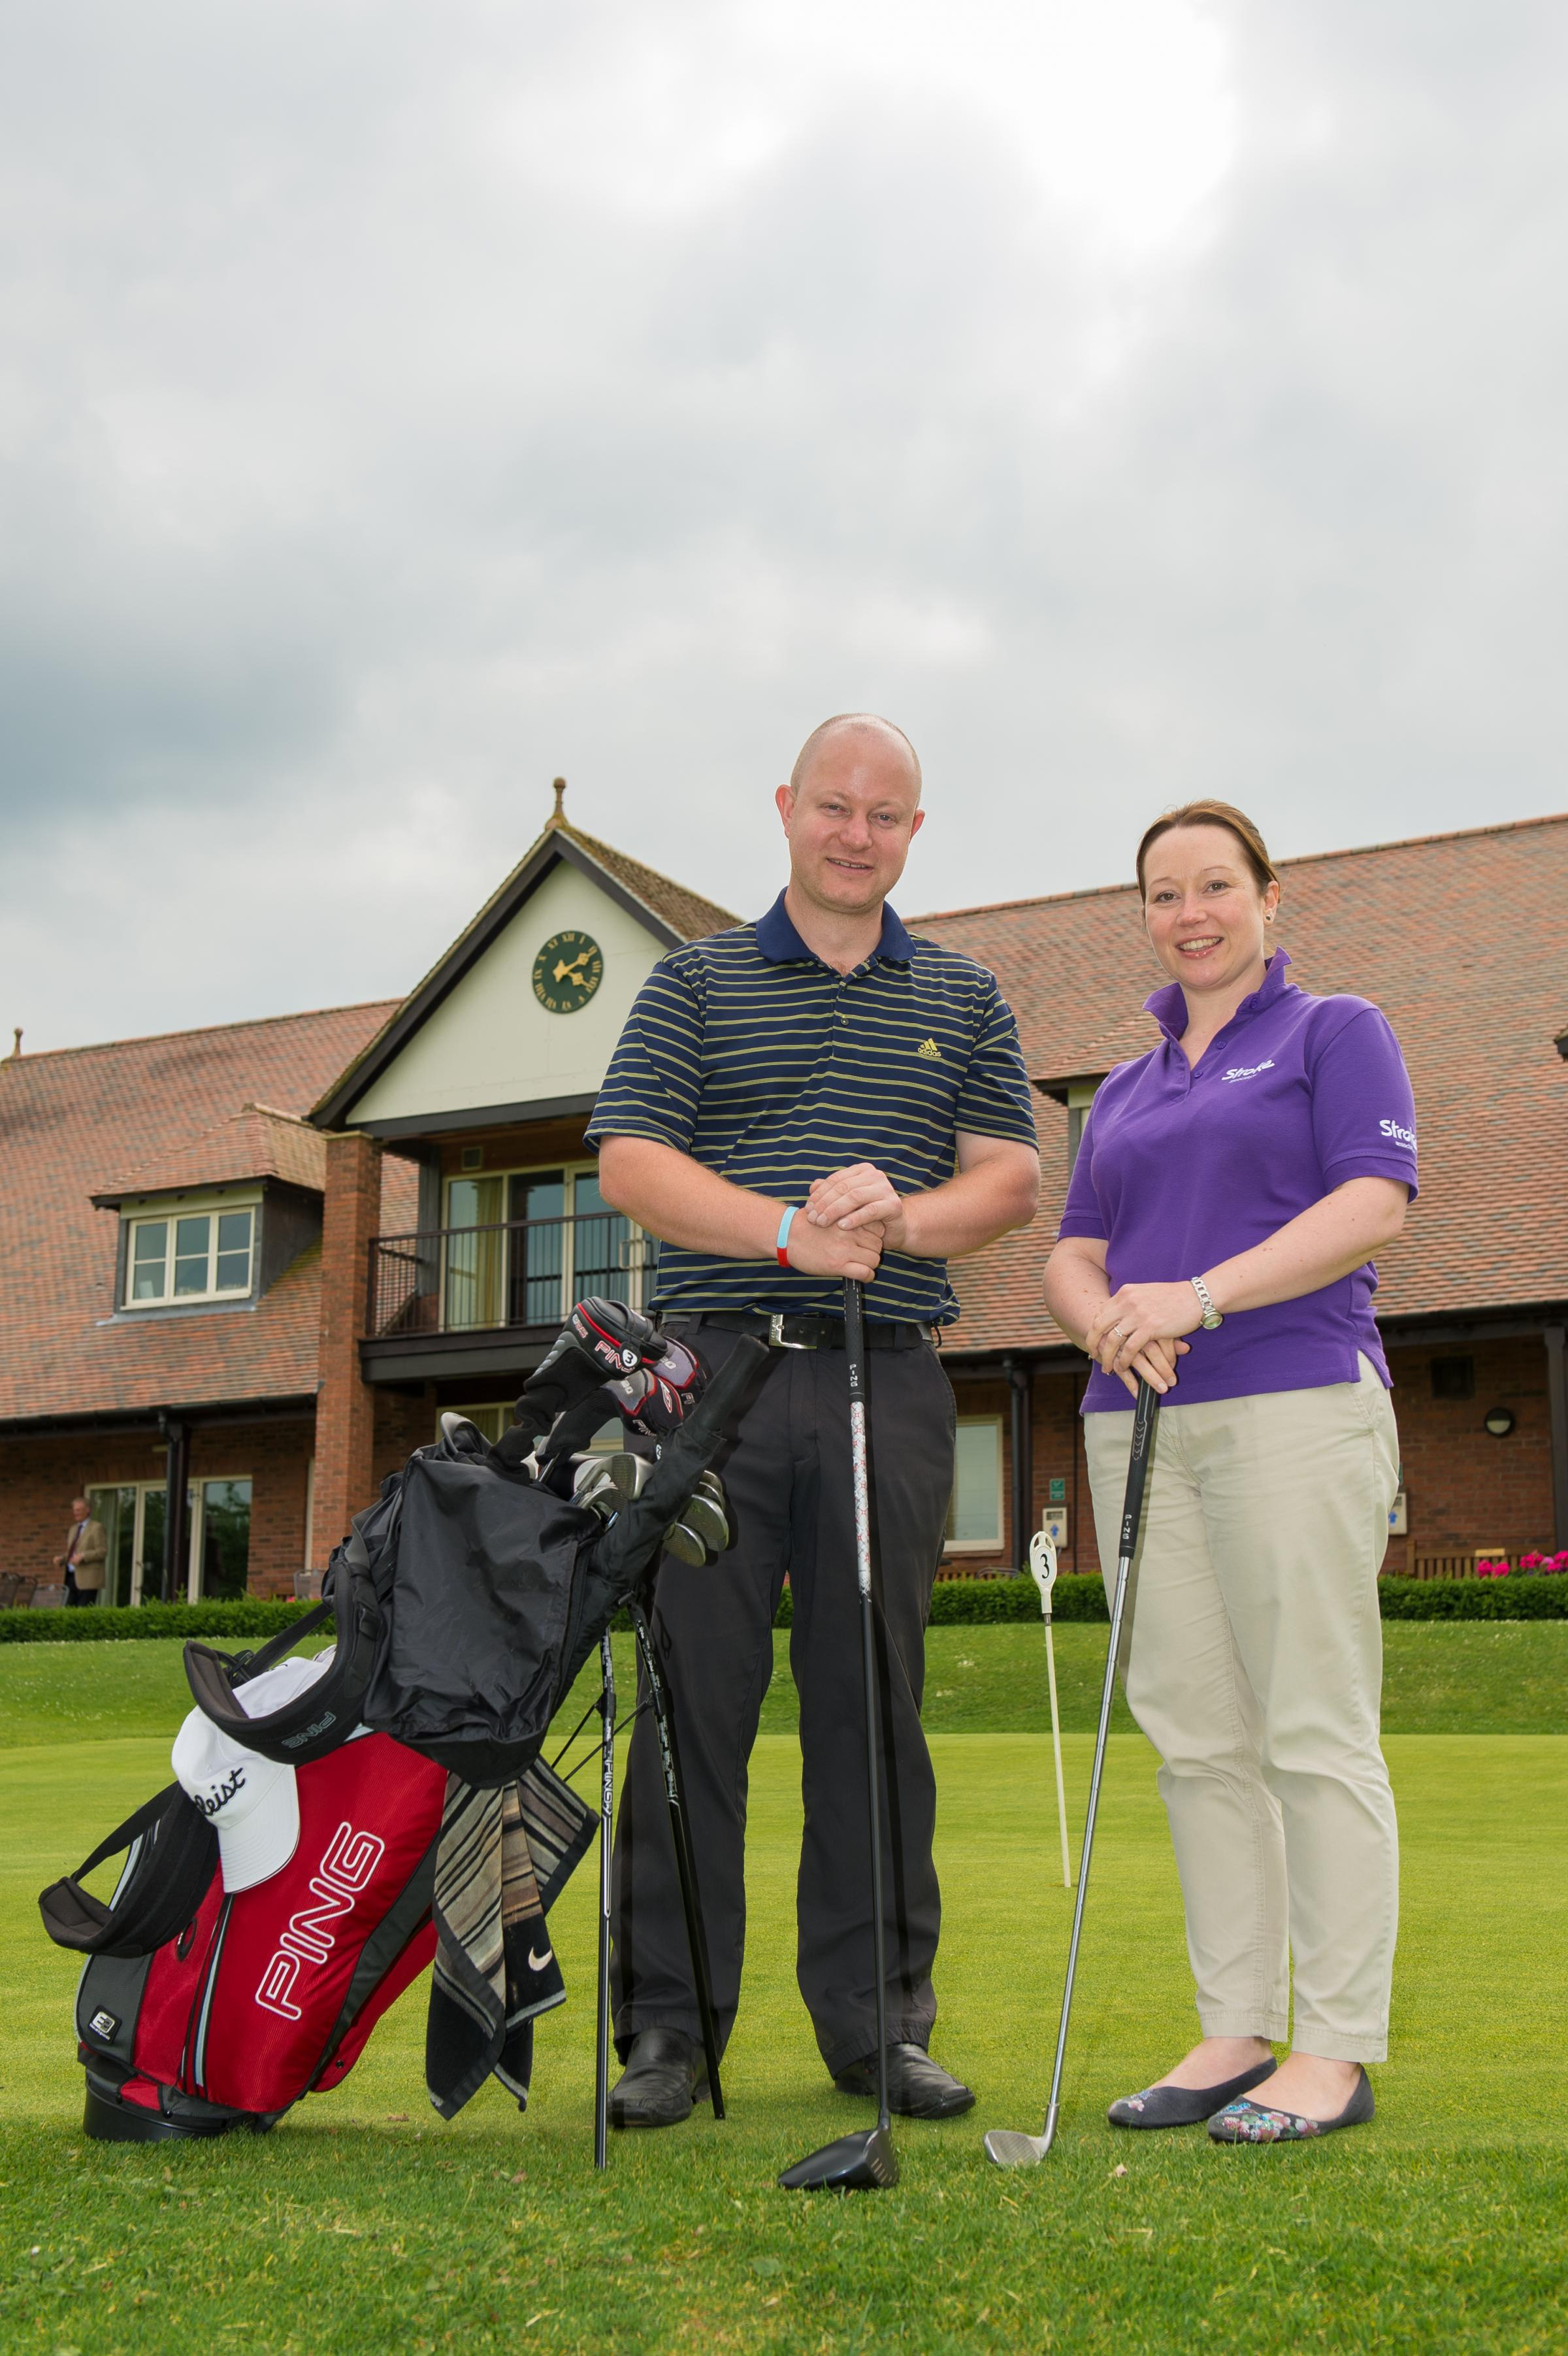 SWING INTO ACTION: Sophie James, Stroke Association's community and events fundraising manager, and Darren Wilkins, from sponsors City Signs Worcester,